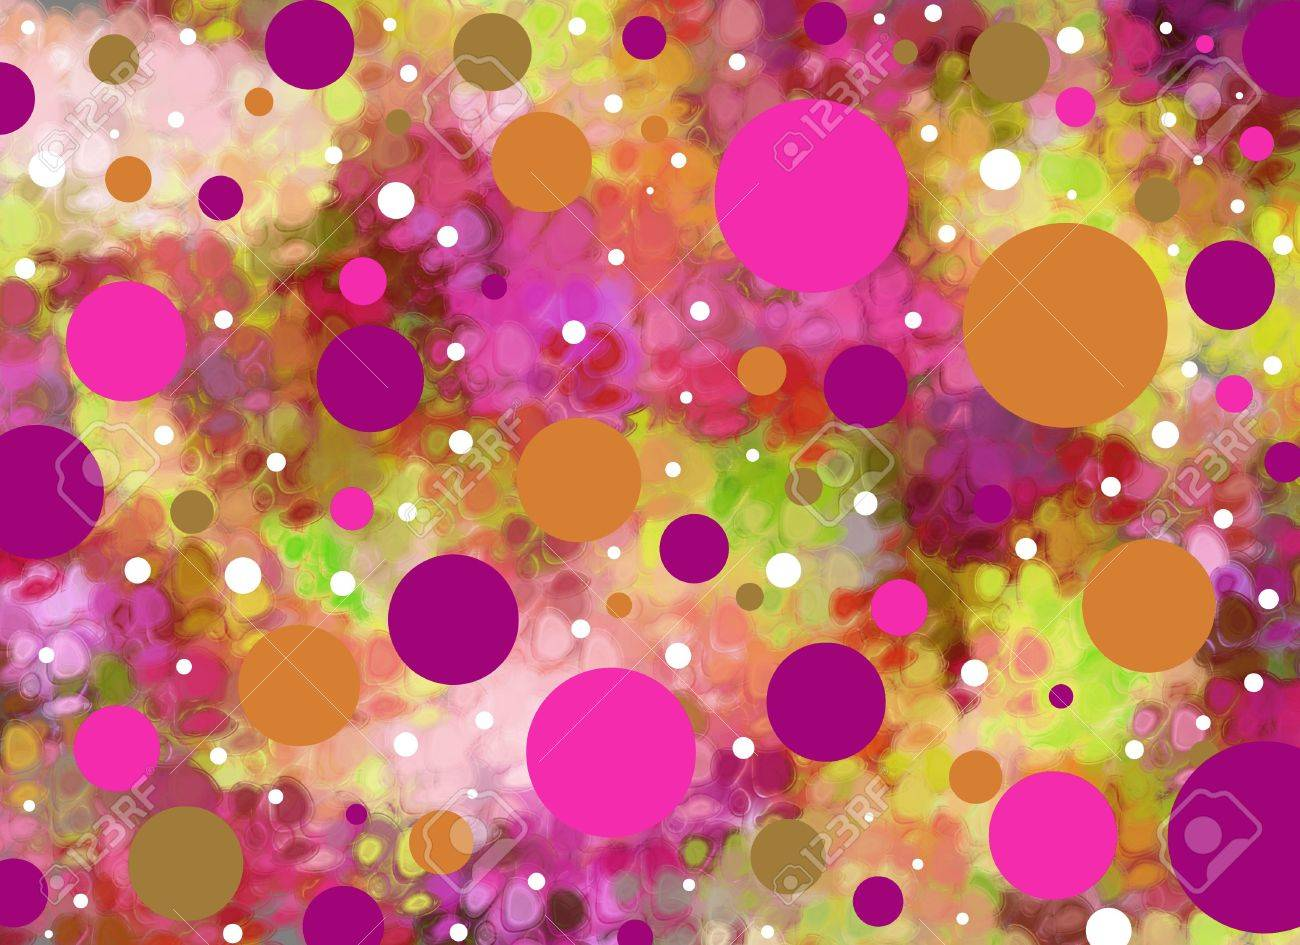 Background is smeared greens and aquas. Big and small polka dots in pinks and purples float across the surface. - 15056402